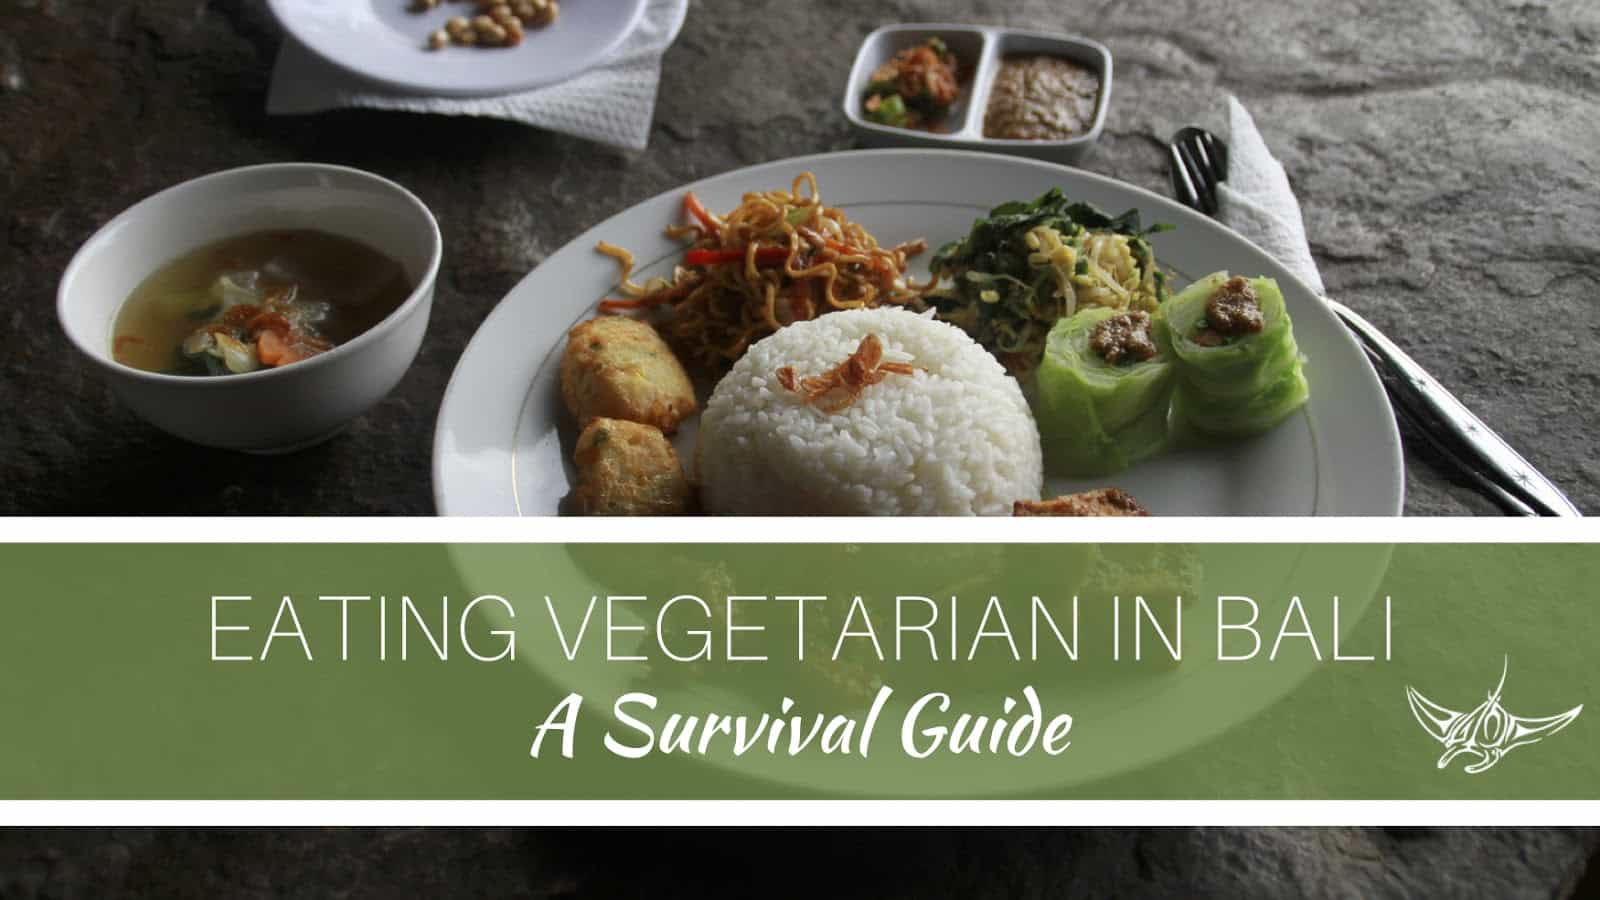 Eating Vegetarian in Bali